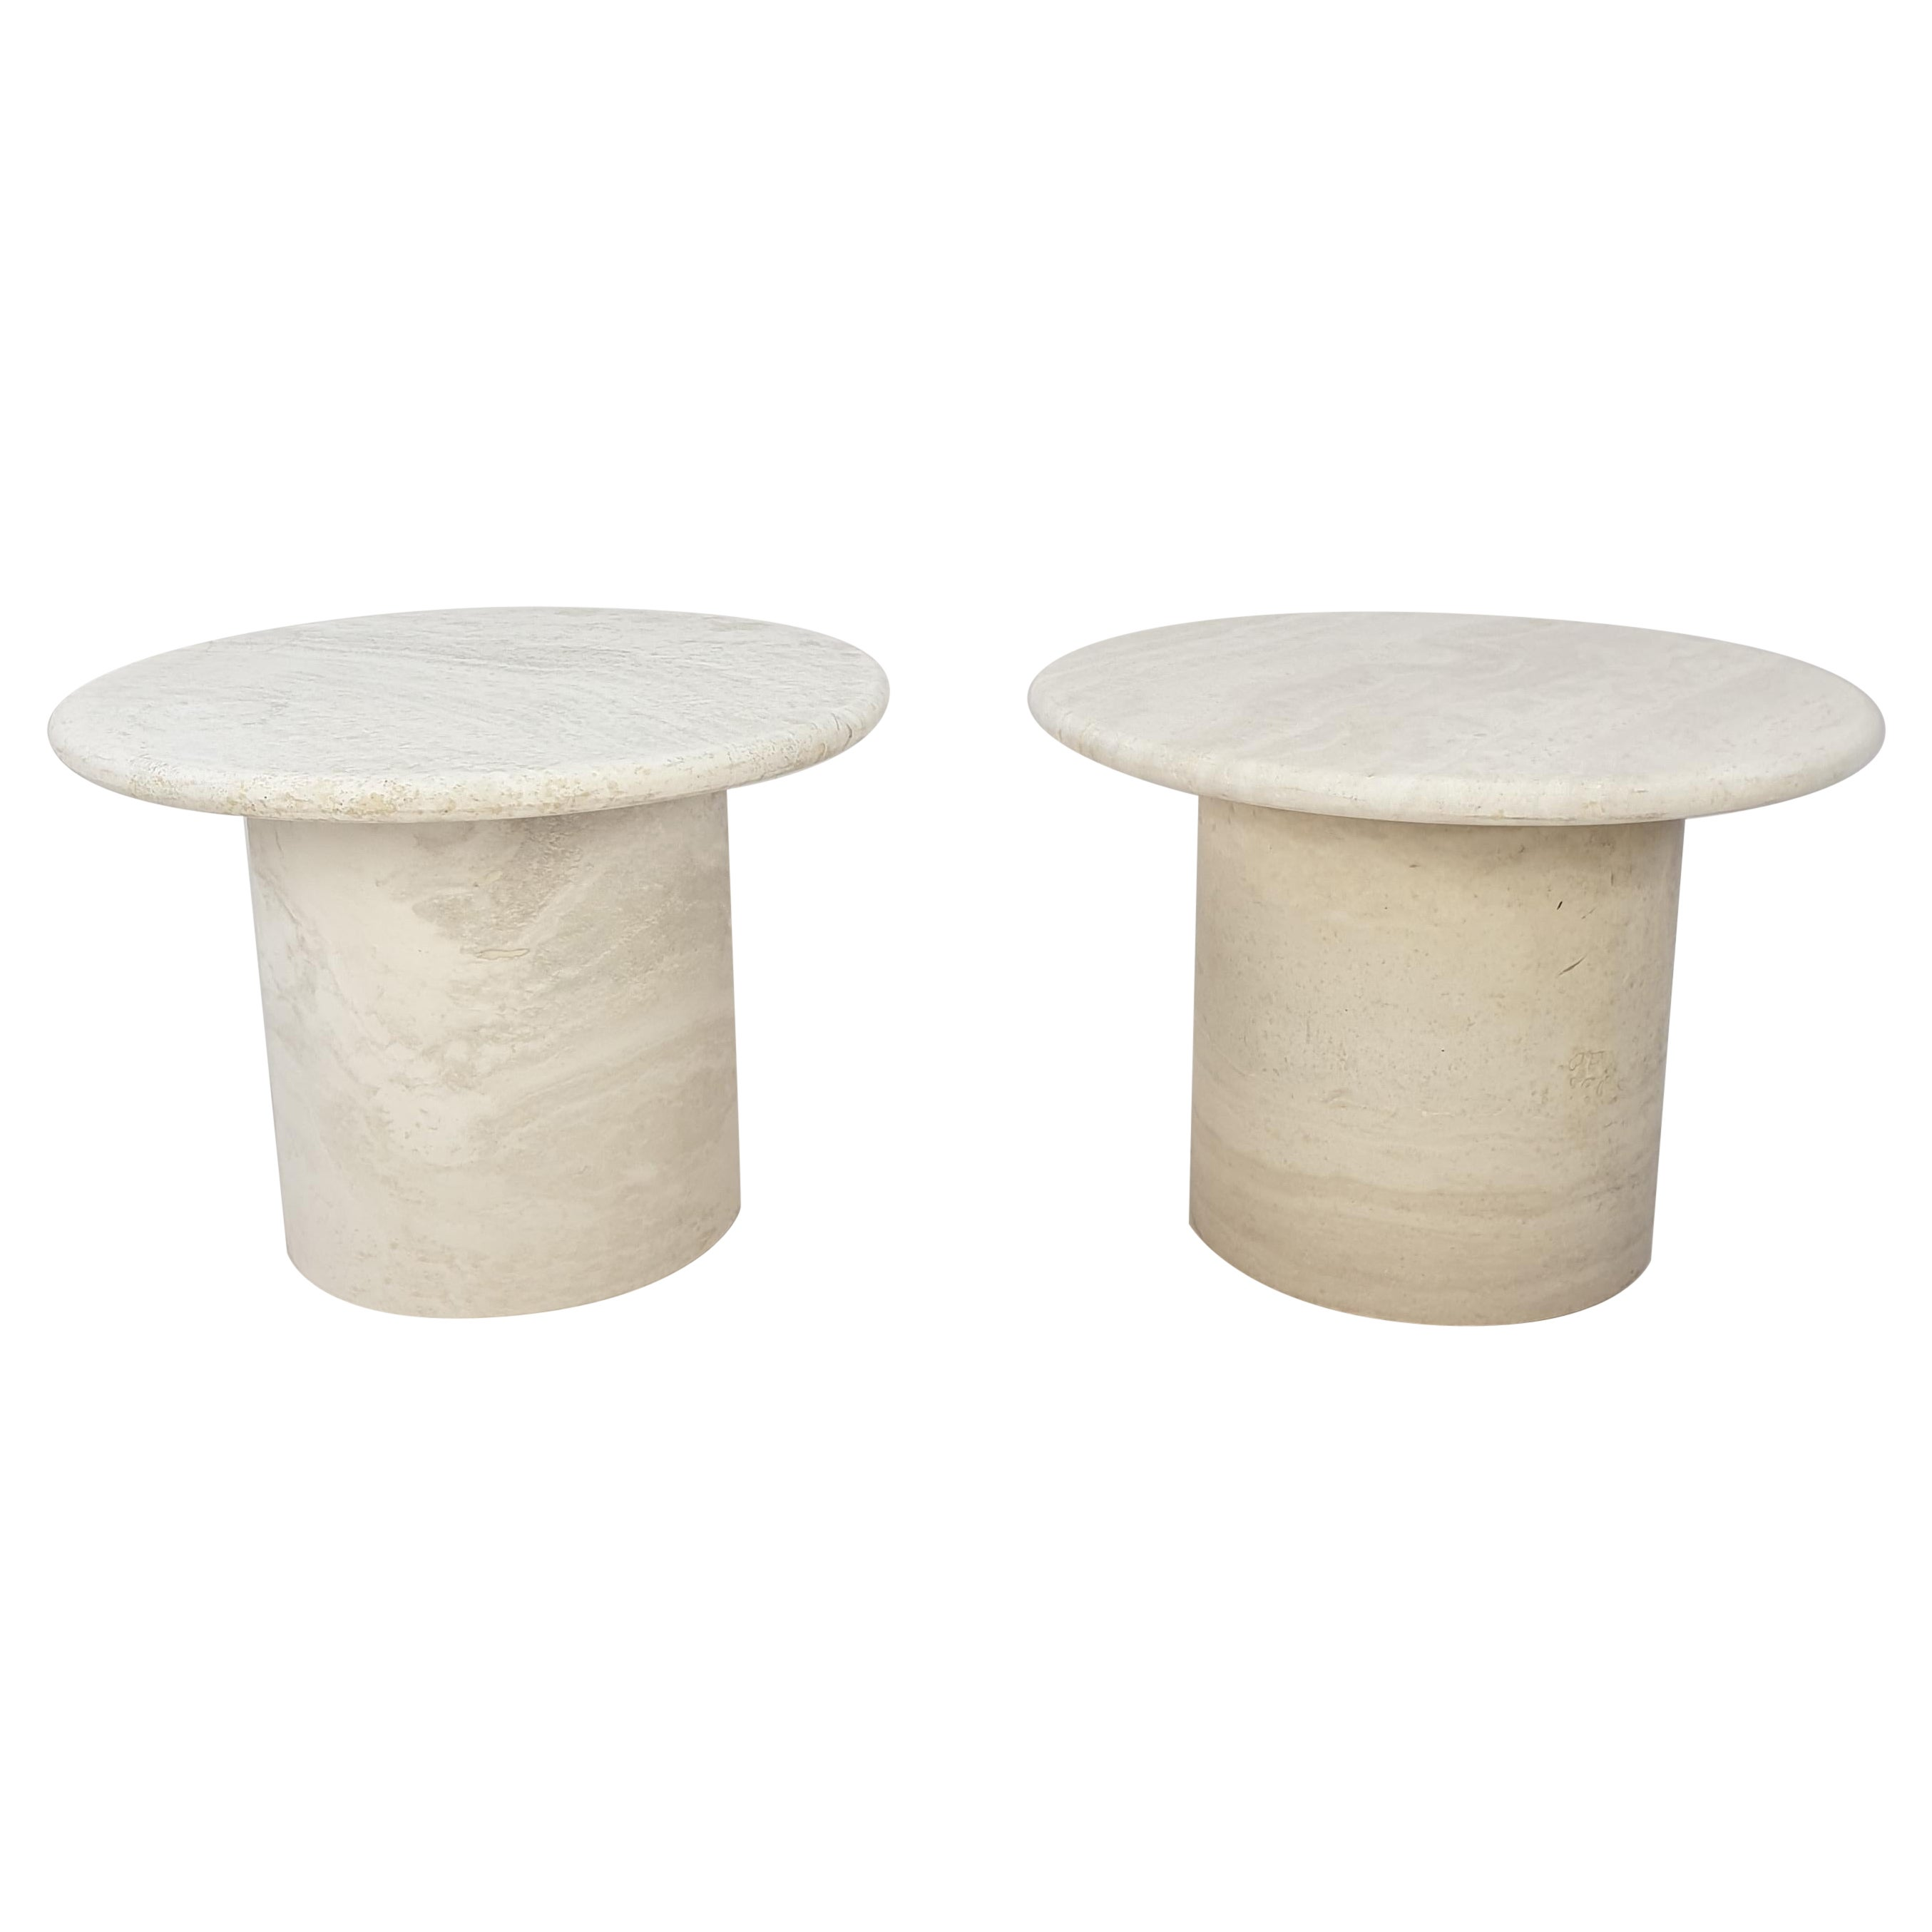 Set of Round Travertine Coffee Tables by Up & Up Italy, 1970s